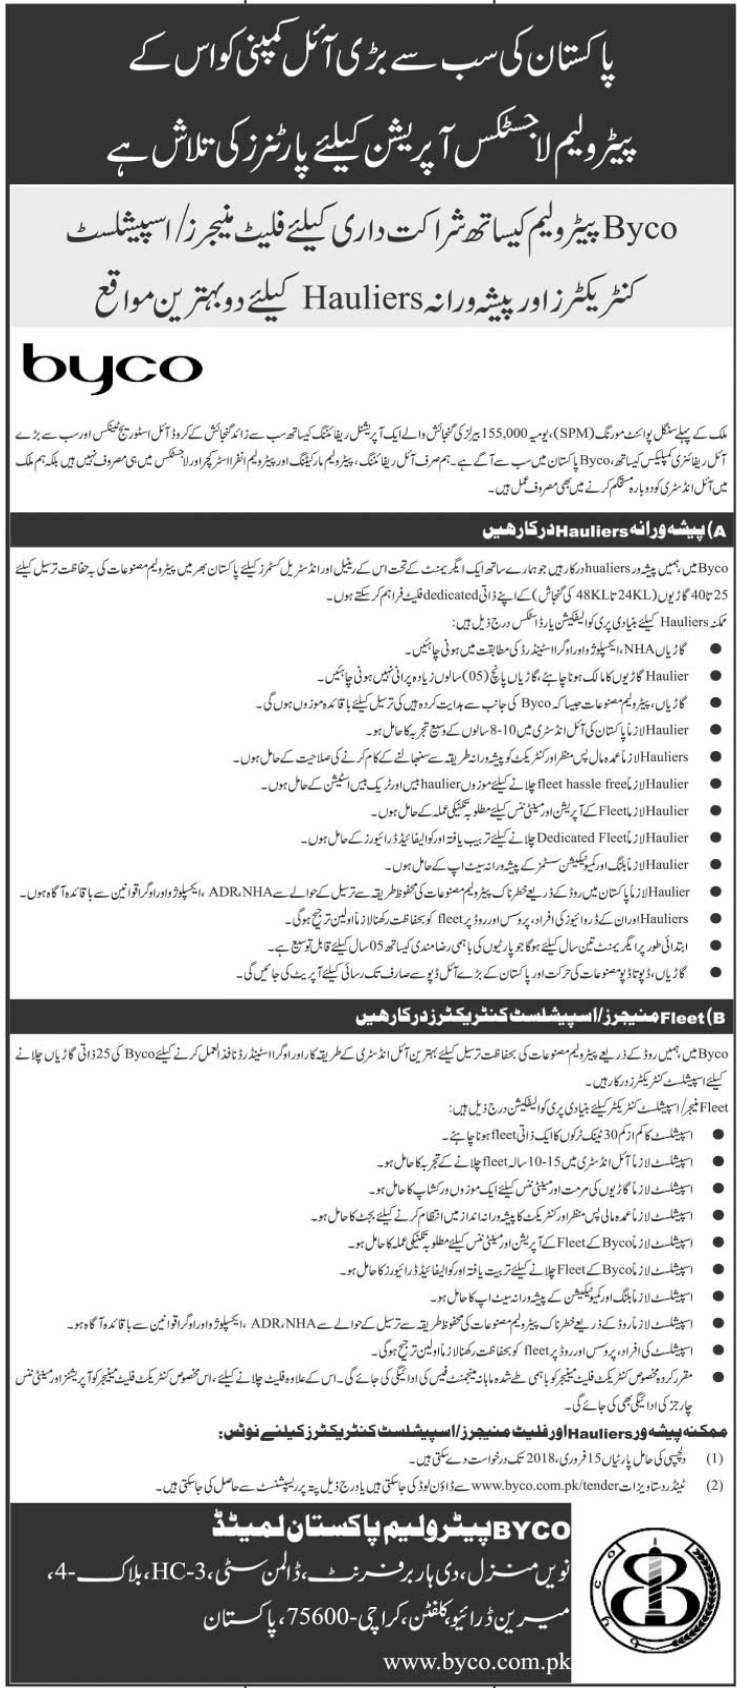 Byco Petroleum Pakistan Limited  Required Managers